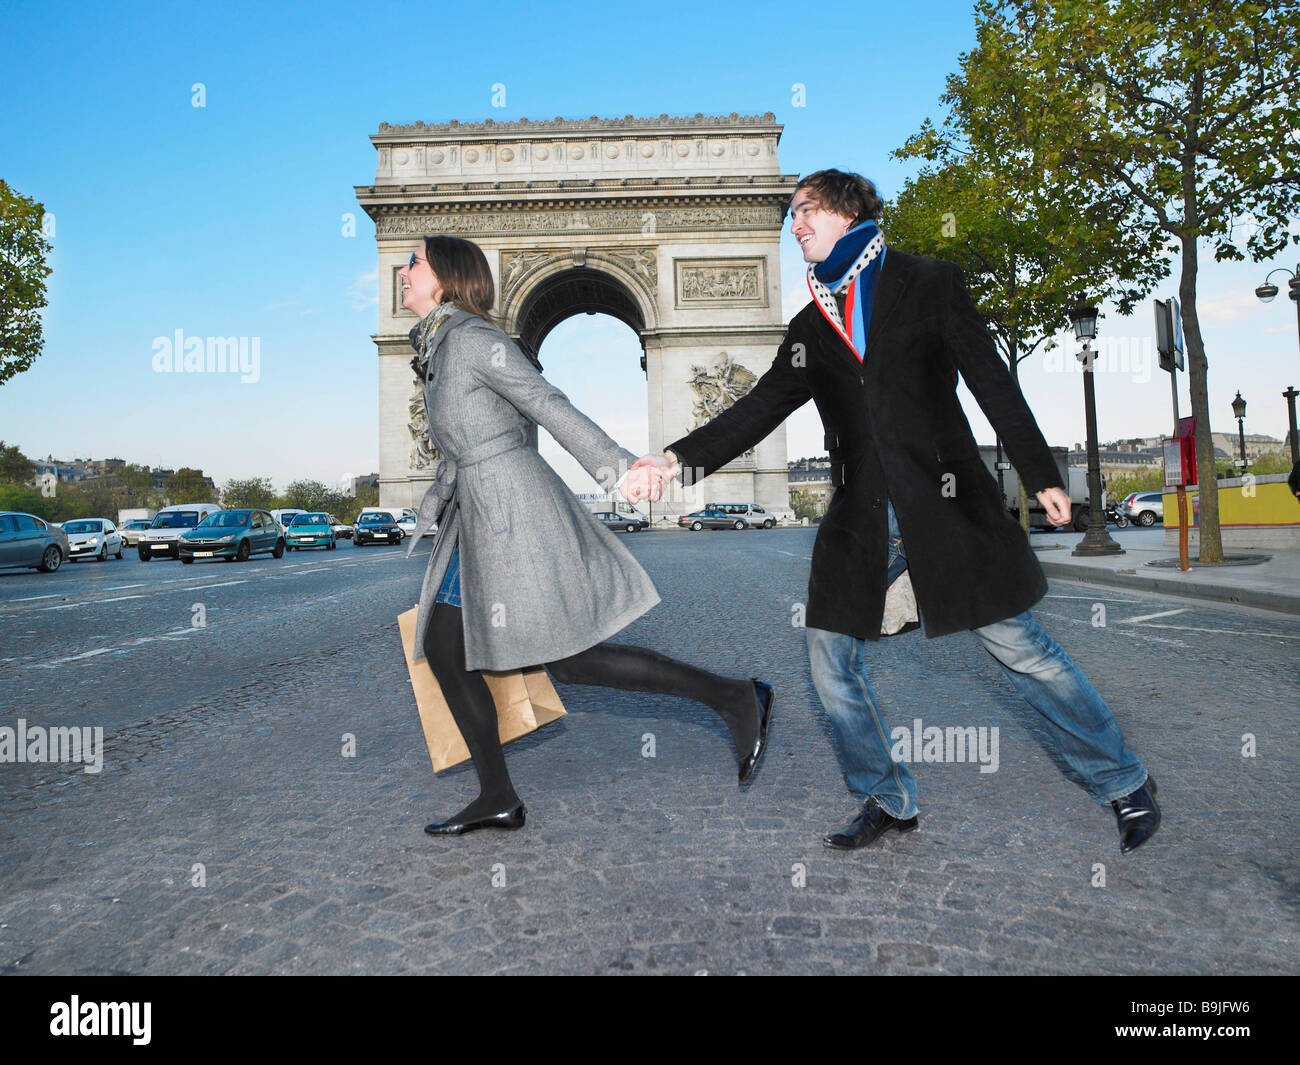 Couple walking on Champs Elysees - Stock Image